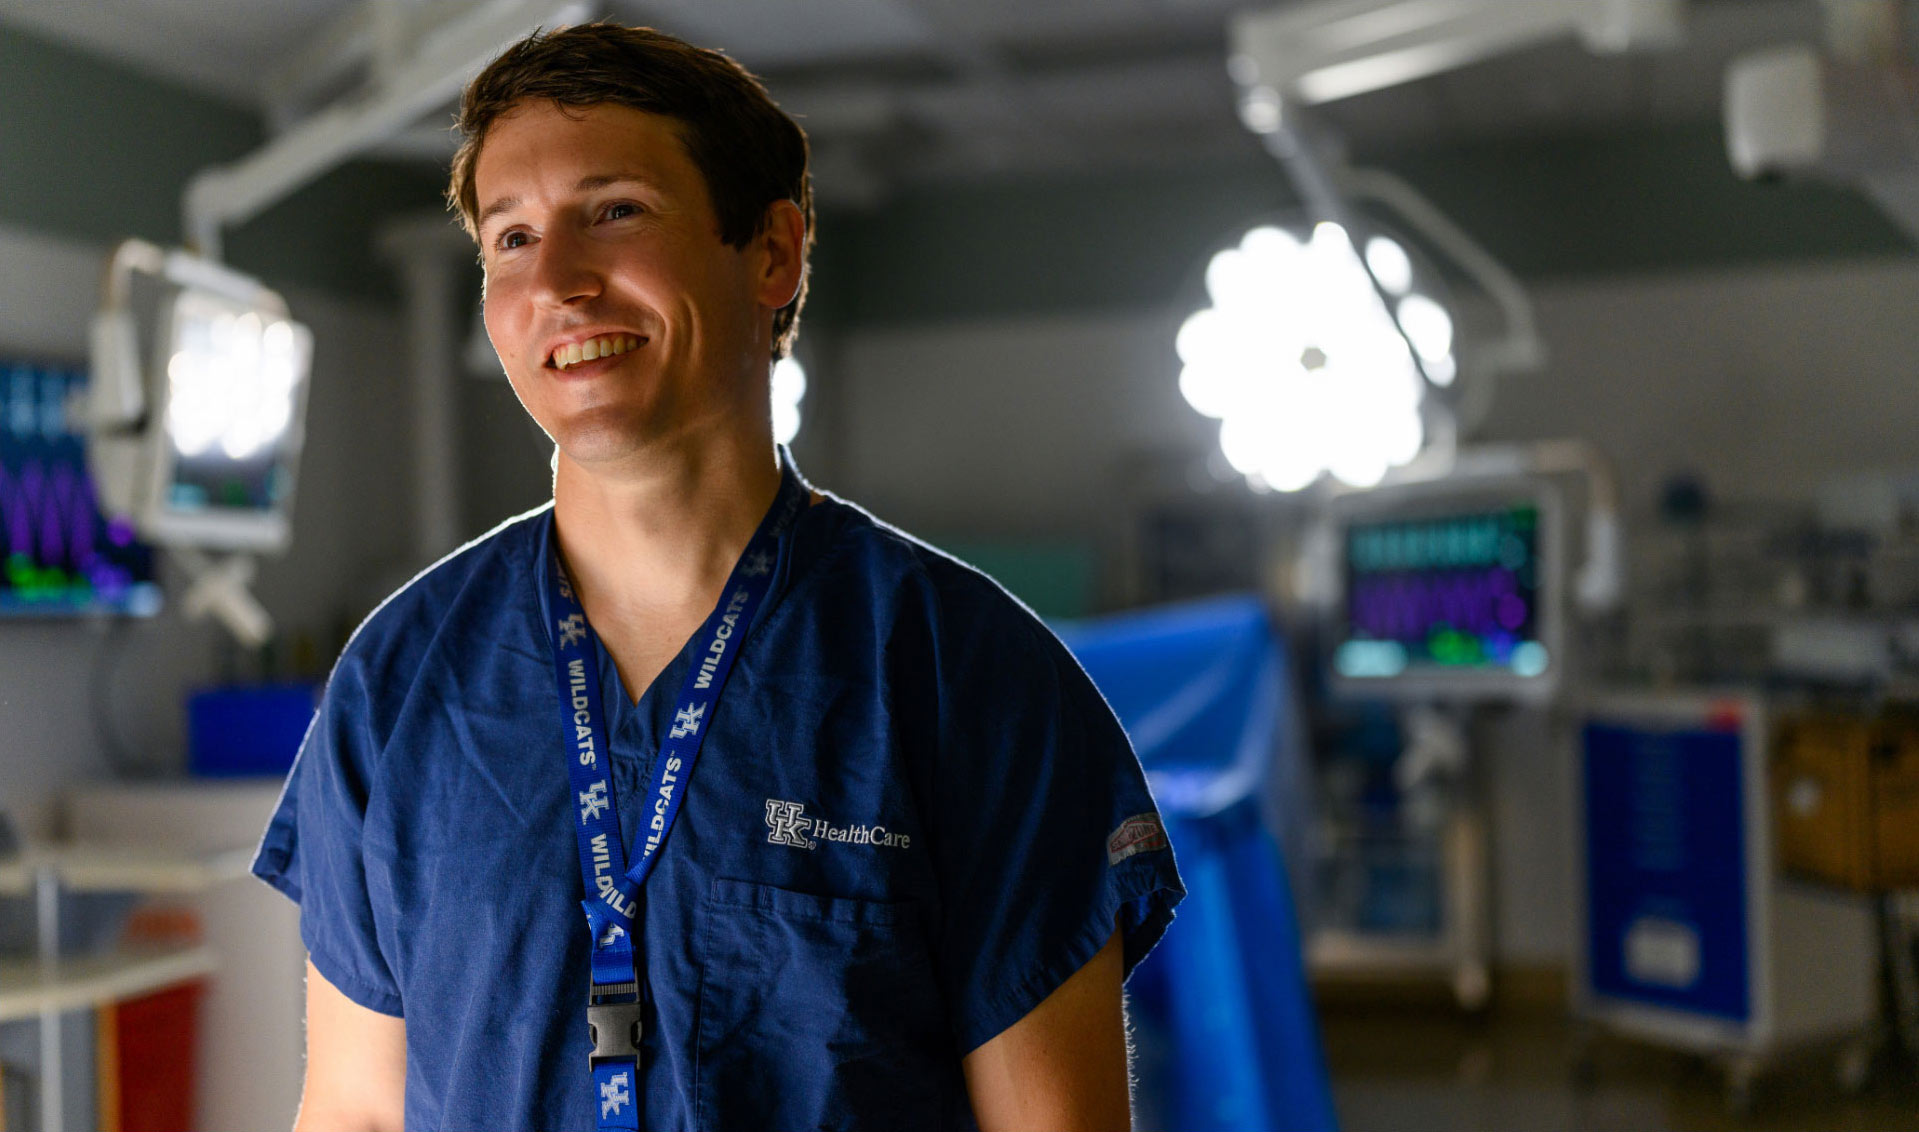 A portrait of Dr. James, a young-looking man with brown hair, dressed in blue scrubs, standing in a surgery room.